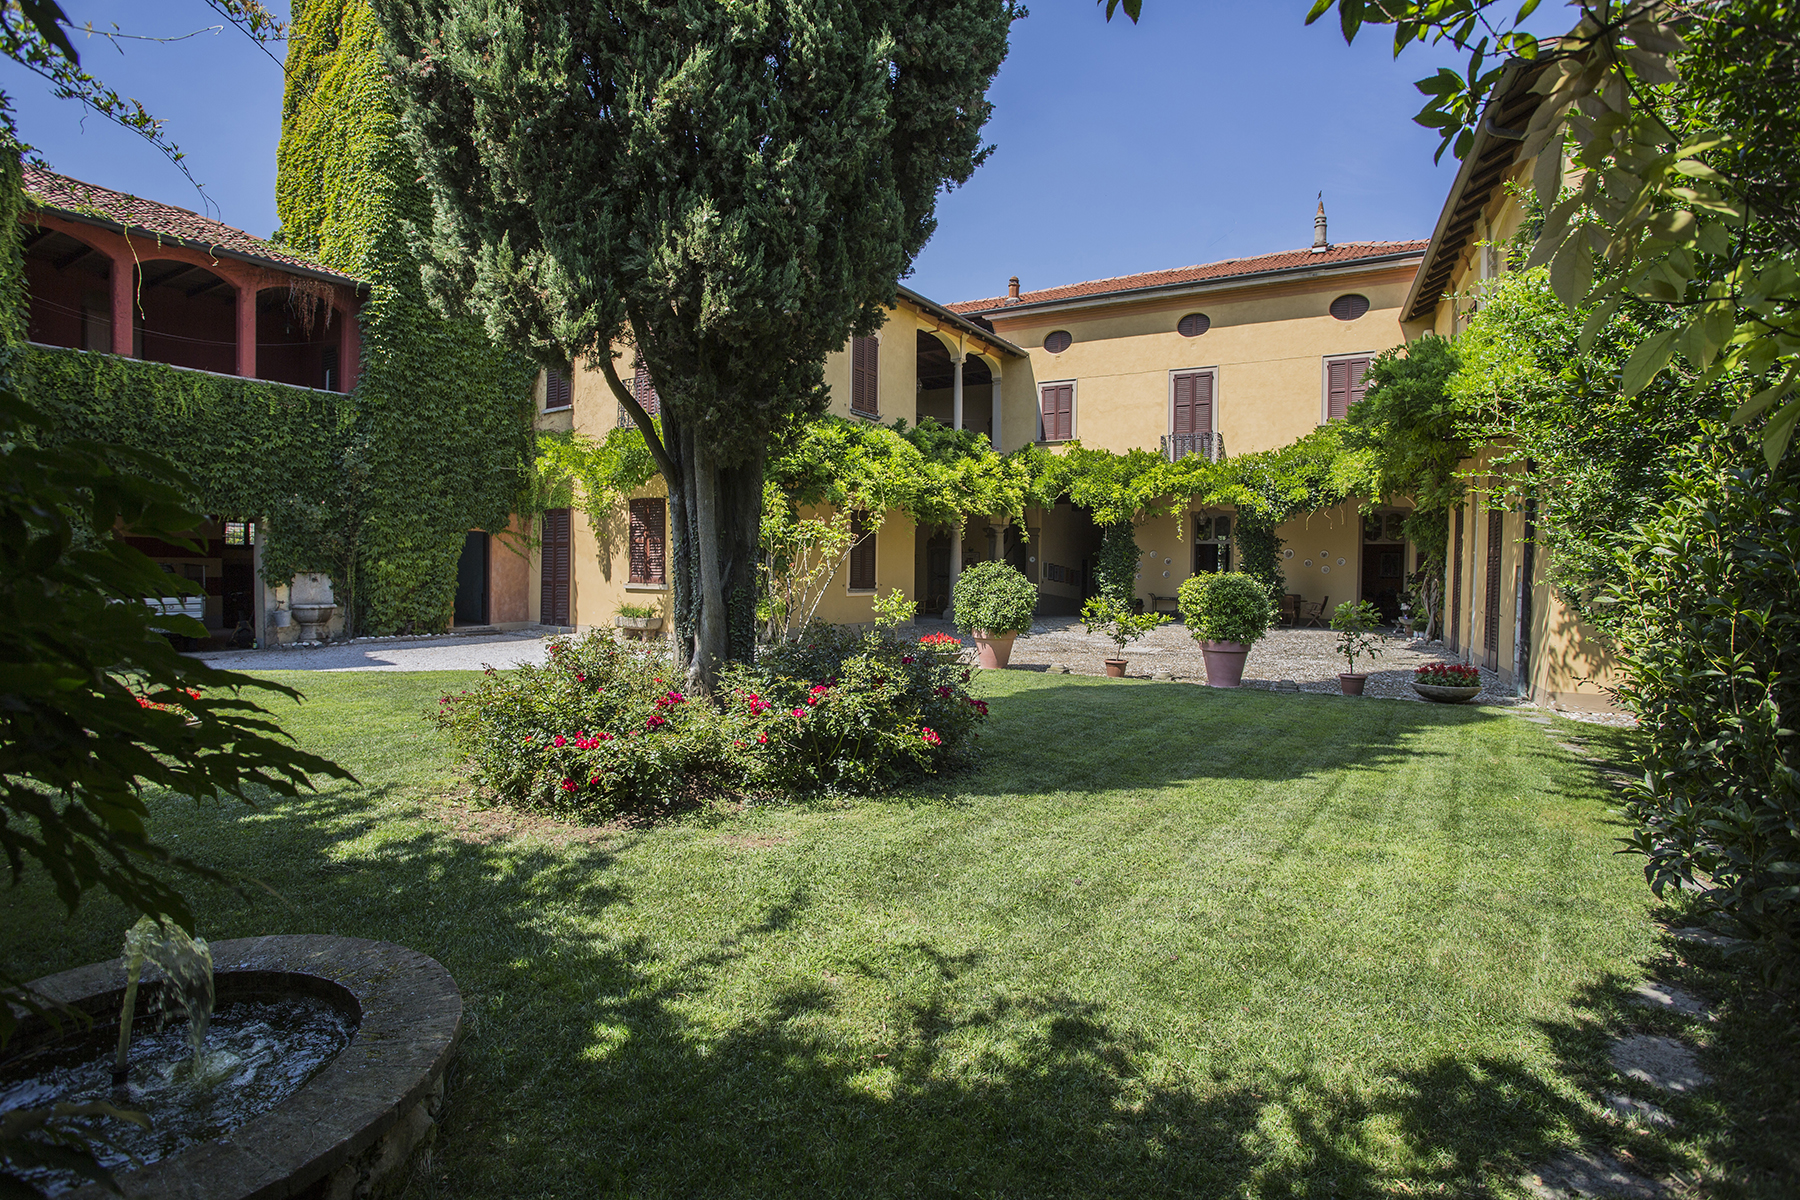 Residential For Sale in Piazza Fumagalli, Garbagnate Monastero, Lecco   , Italy